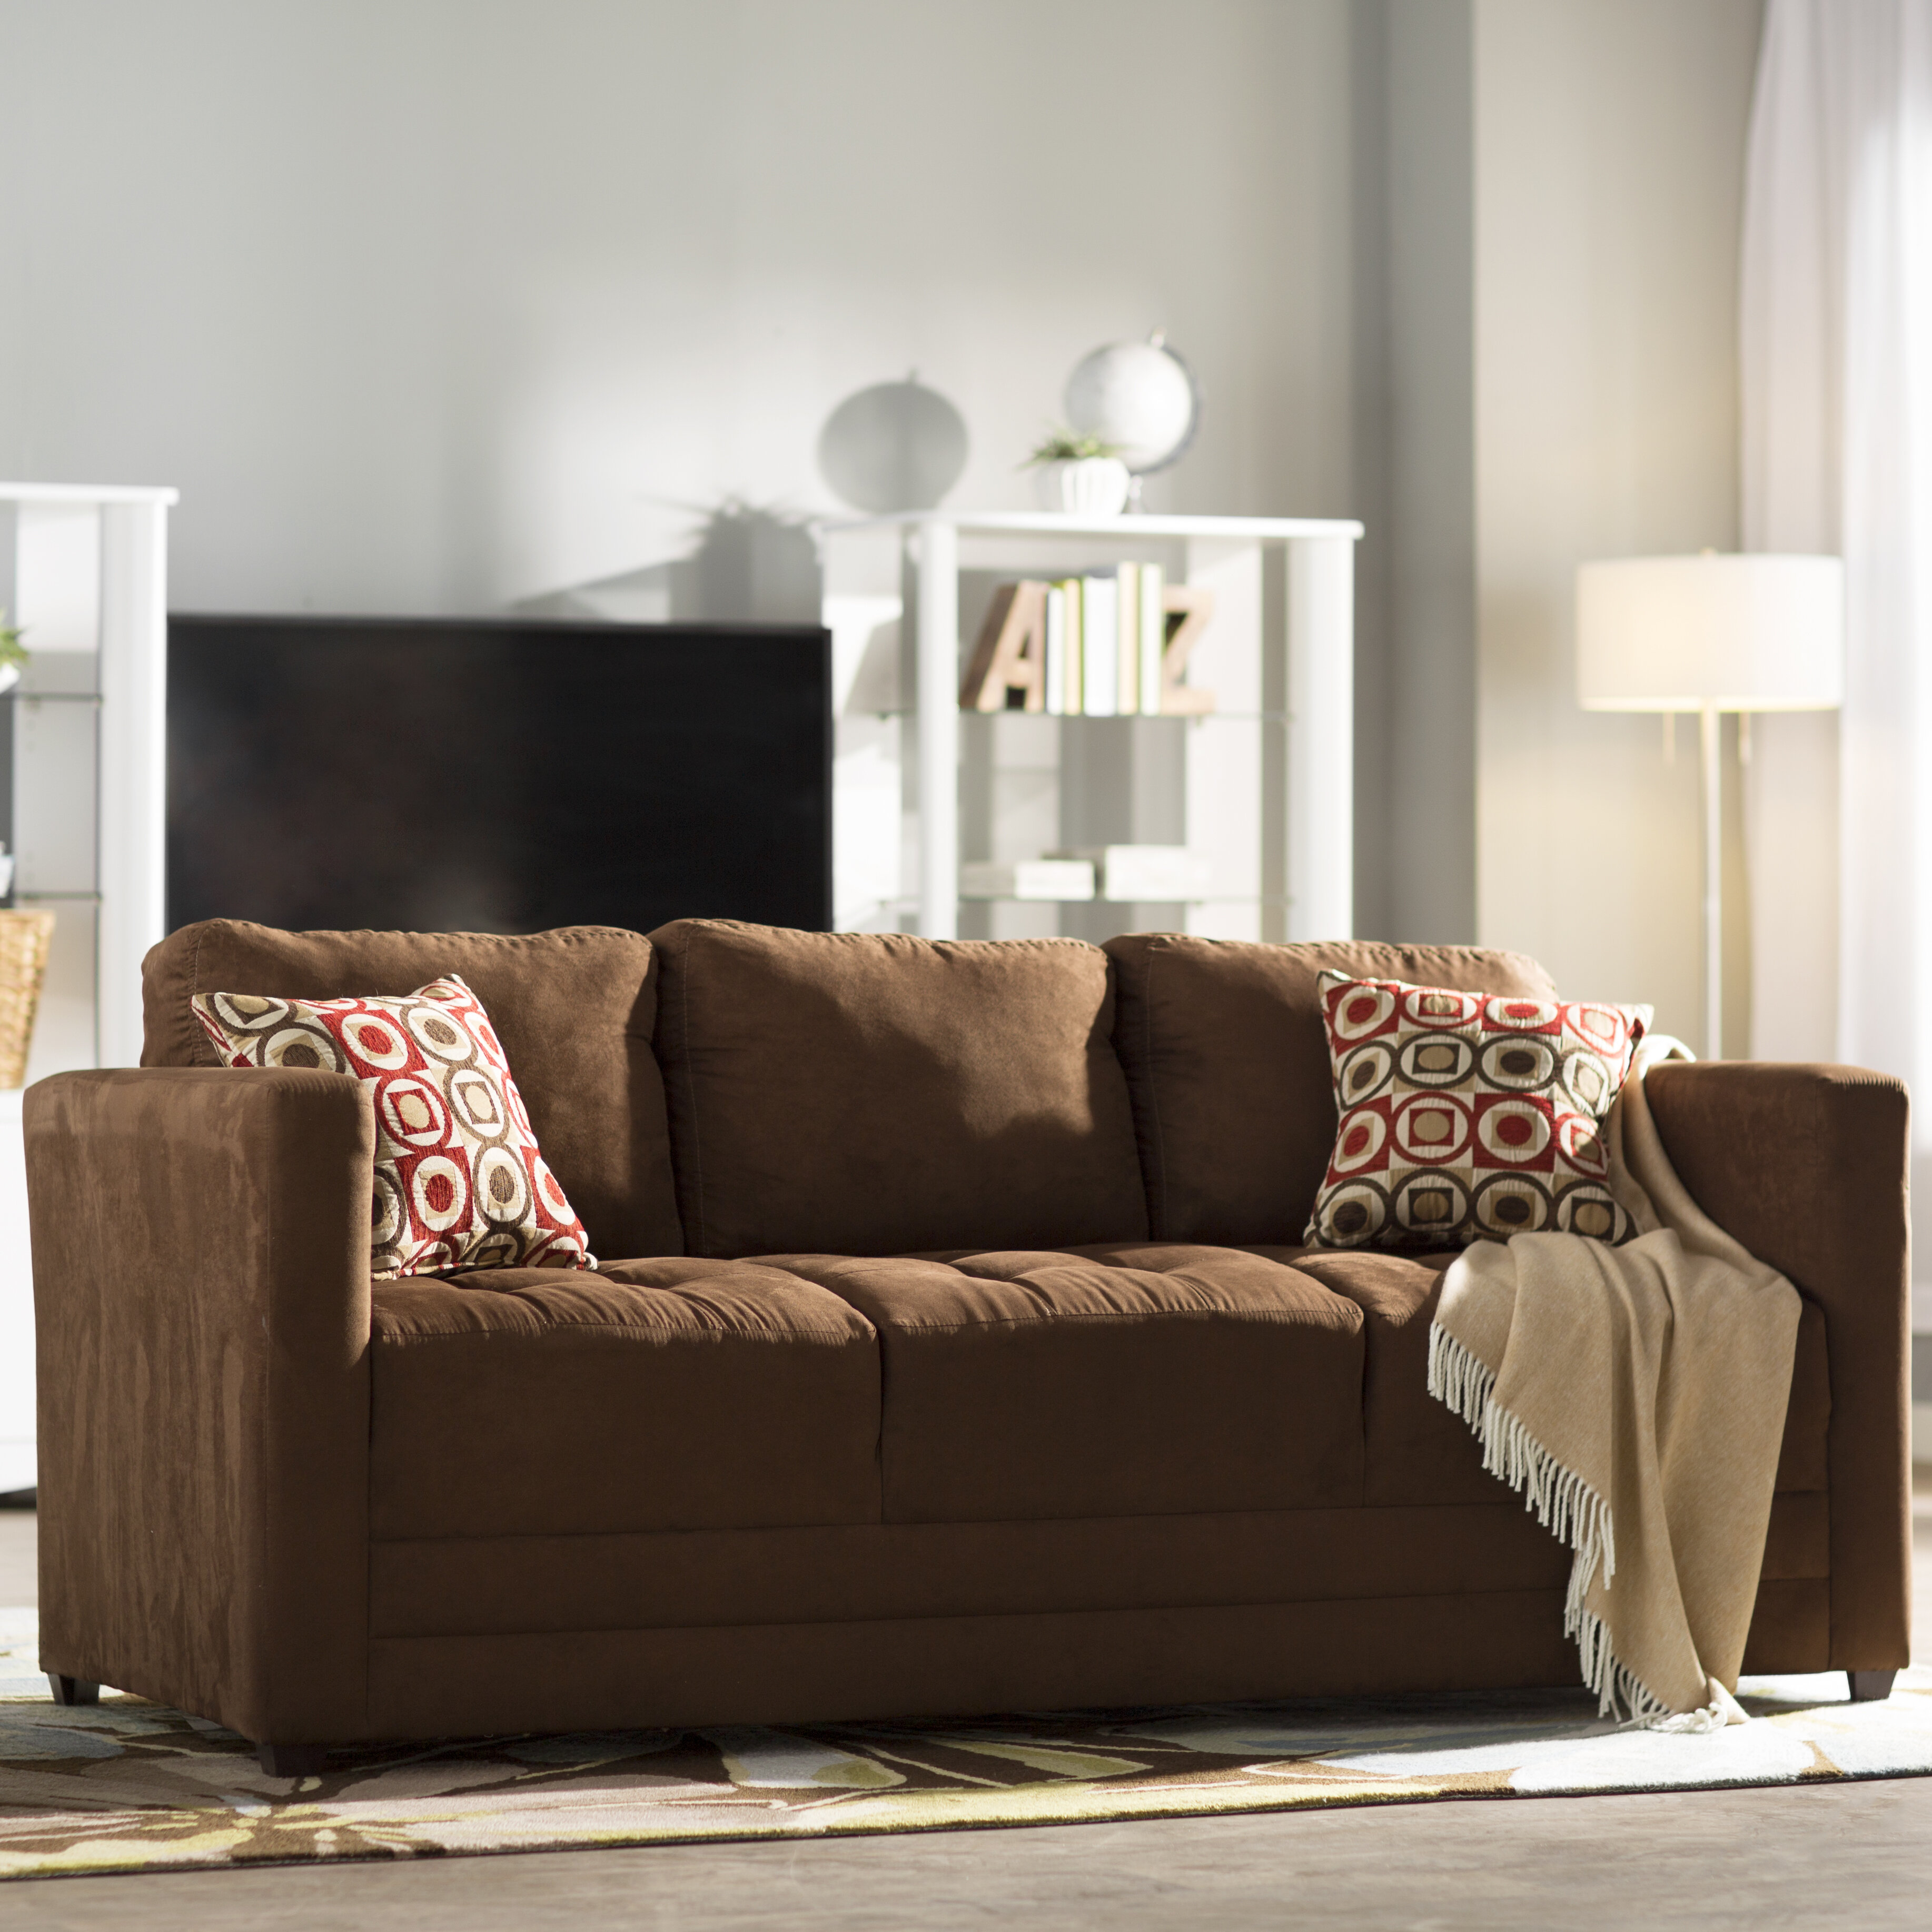 serta group stationary living collections room kaoaz design lss and hughes s collection livings colder upholstery appliance home by furniture